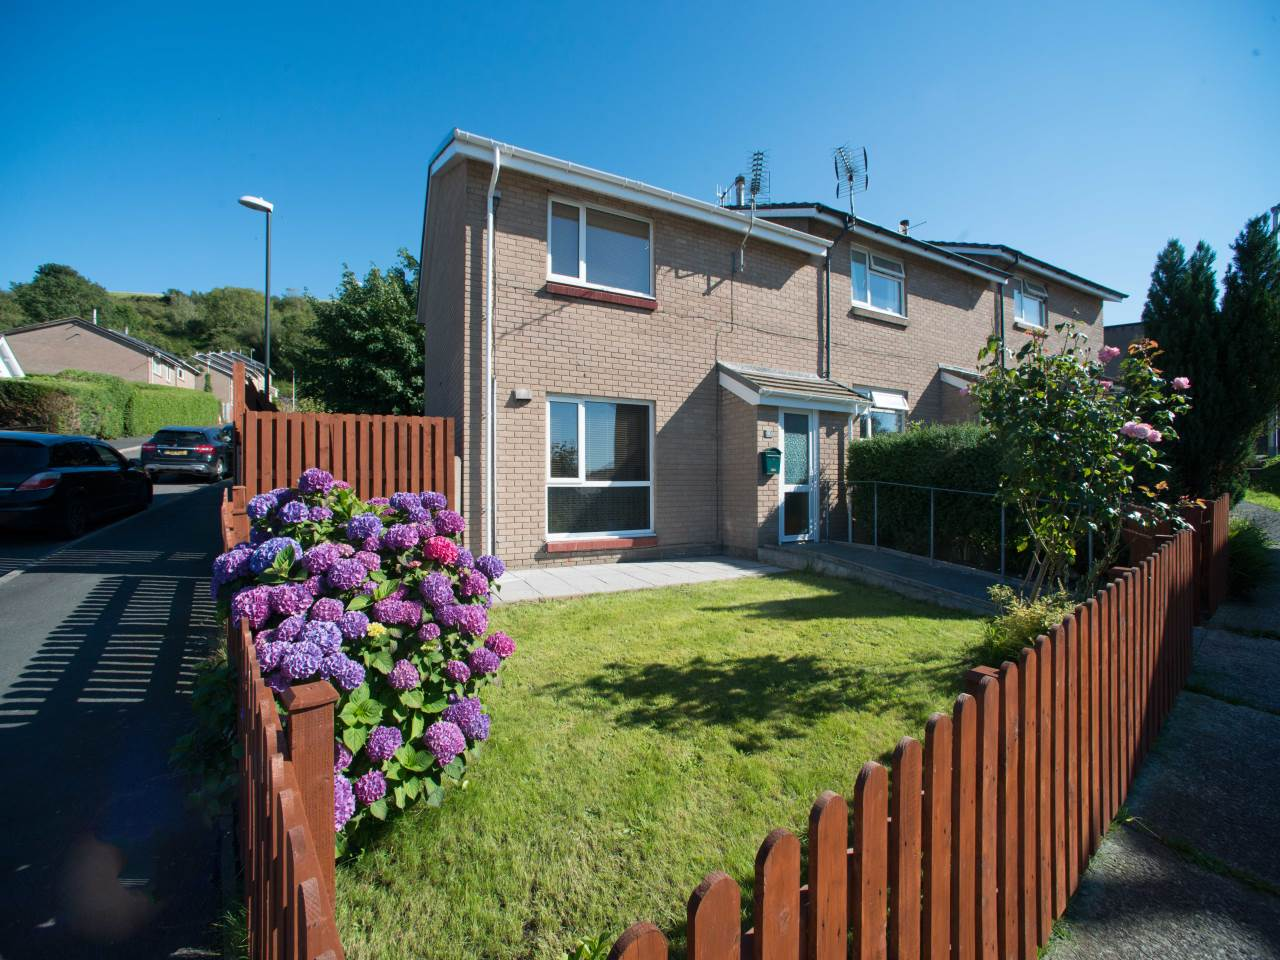 2 bed house for sale in Heol Tyn y Fron, Penparcau - Property Image 1